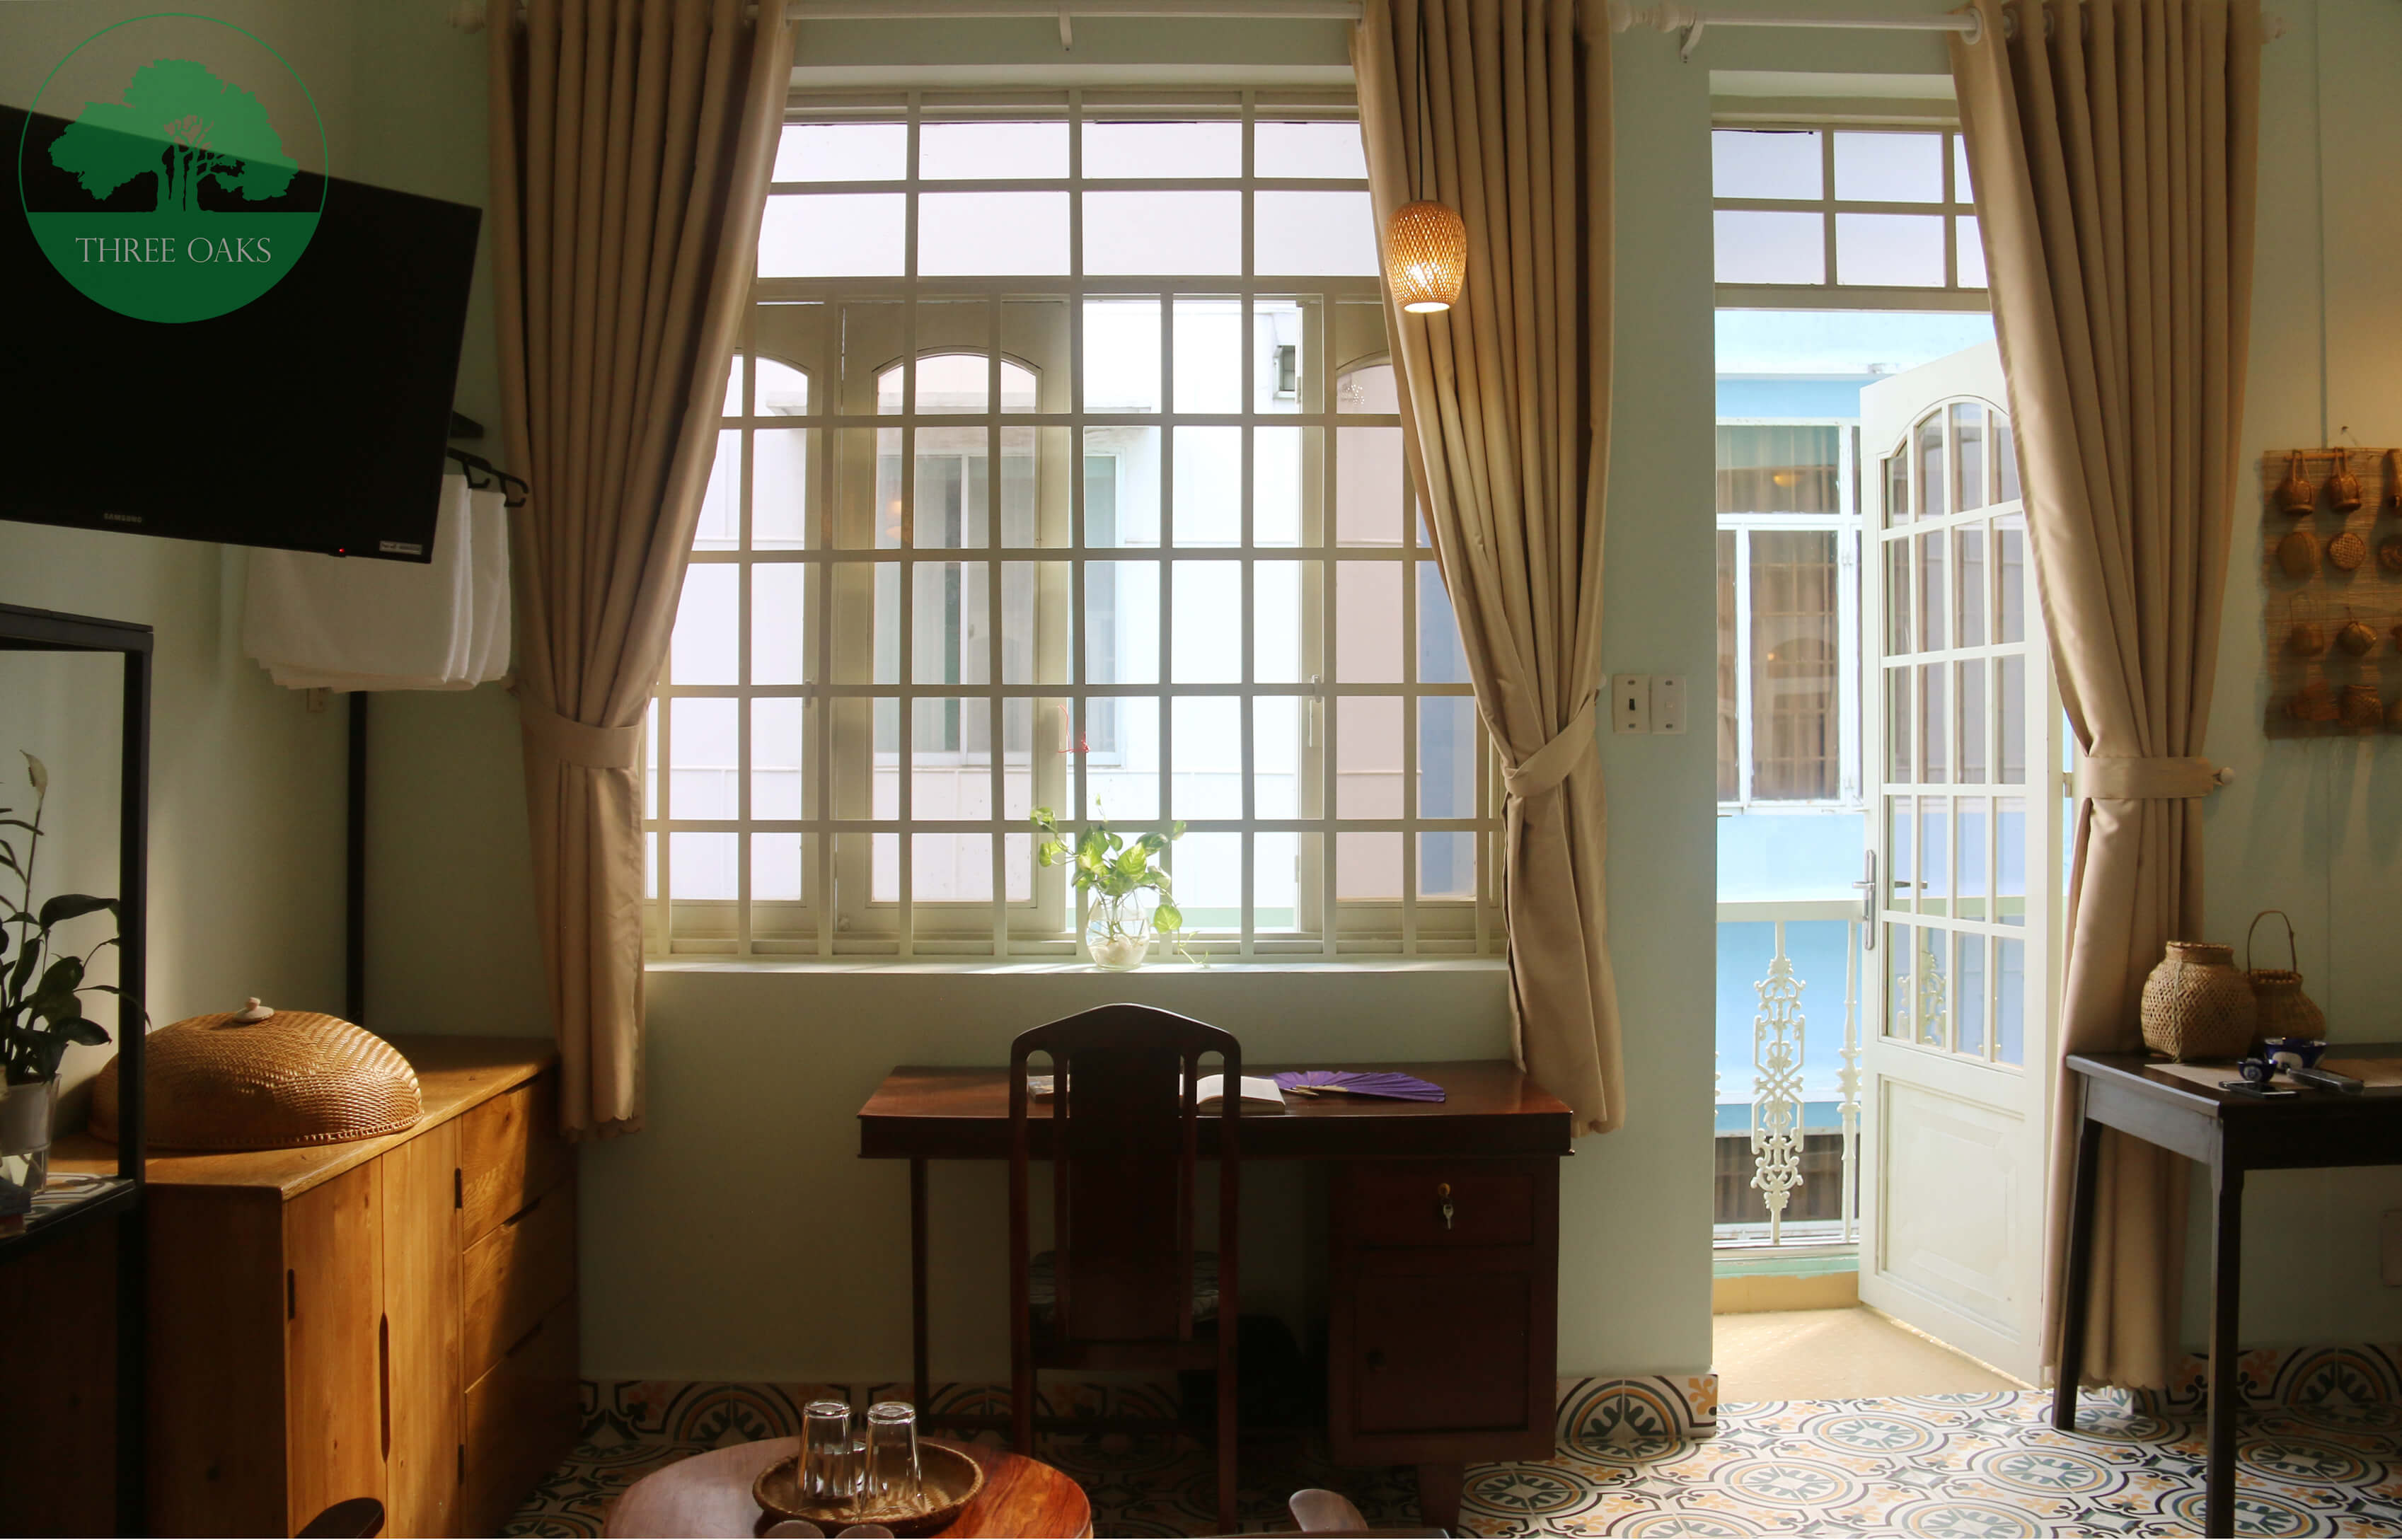 three-Oaks-apartments-in-ho-chi-minh-city-for-rent-studio-type-b-29